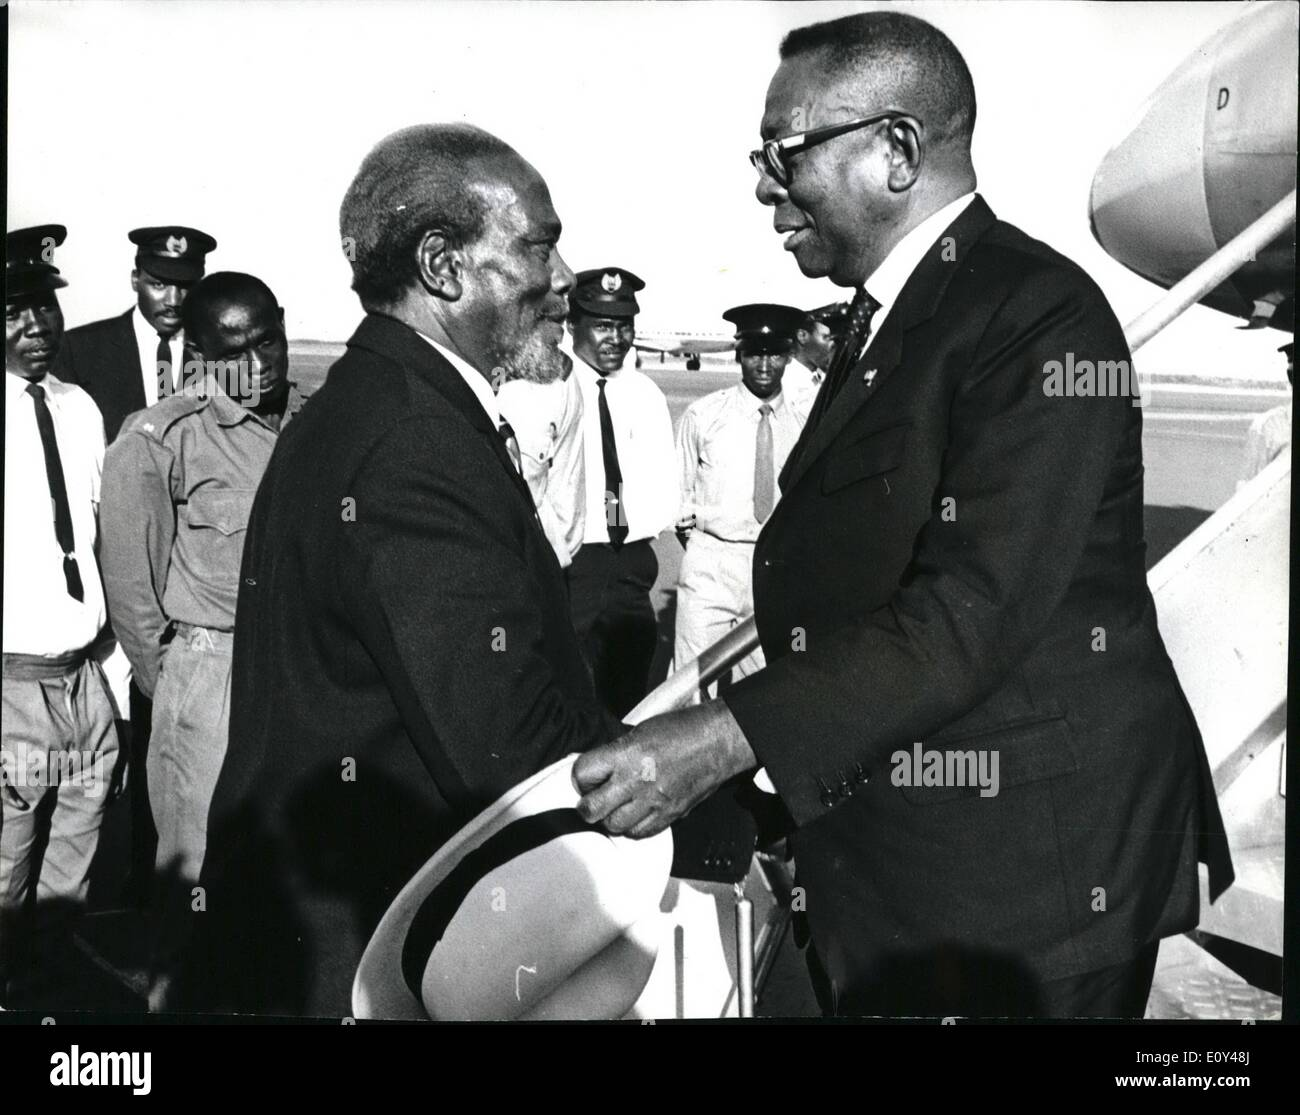 Oct. 10, 1968 - Enclosed please pictures taken in Nairobi today of the visit of President William Tubman of Liberia. President Tubman is here for a 9 days State Visit to Kenya. President Tubman tomorrow opens the Nairobi Agricultural Show - the biggest show of its Kind in Africa. Photo Shows President Tubman with President Jomo Kenyatta in Nairobi. - Stock Image